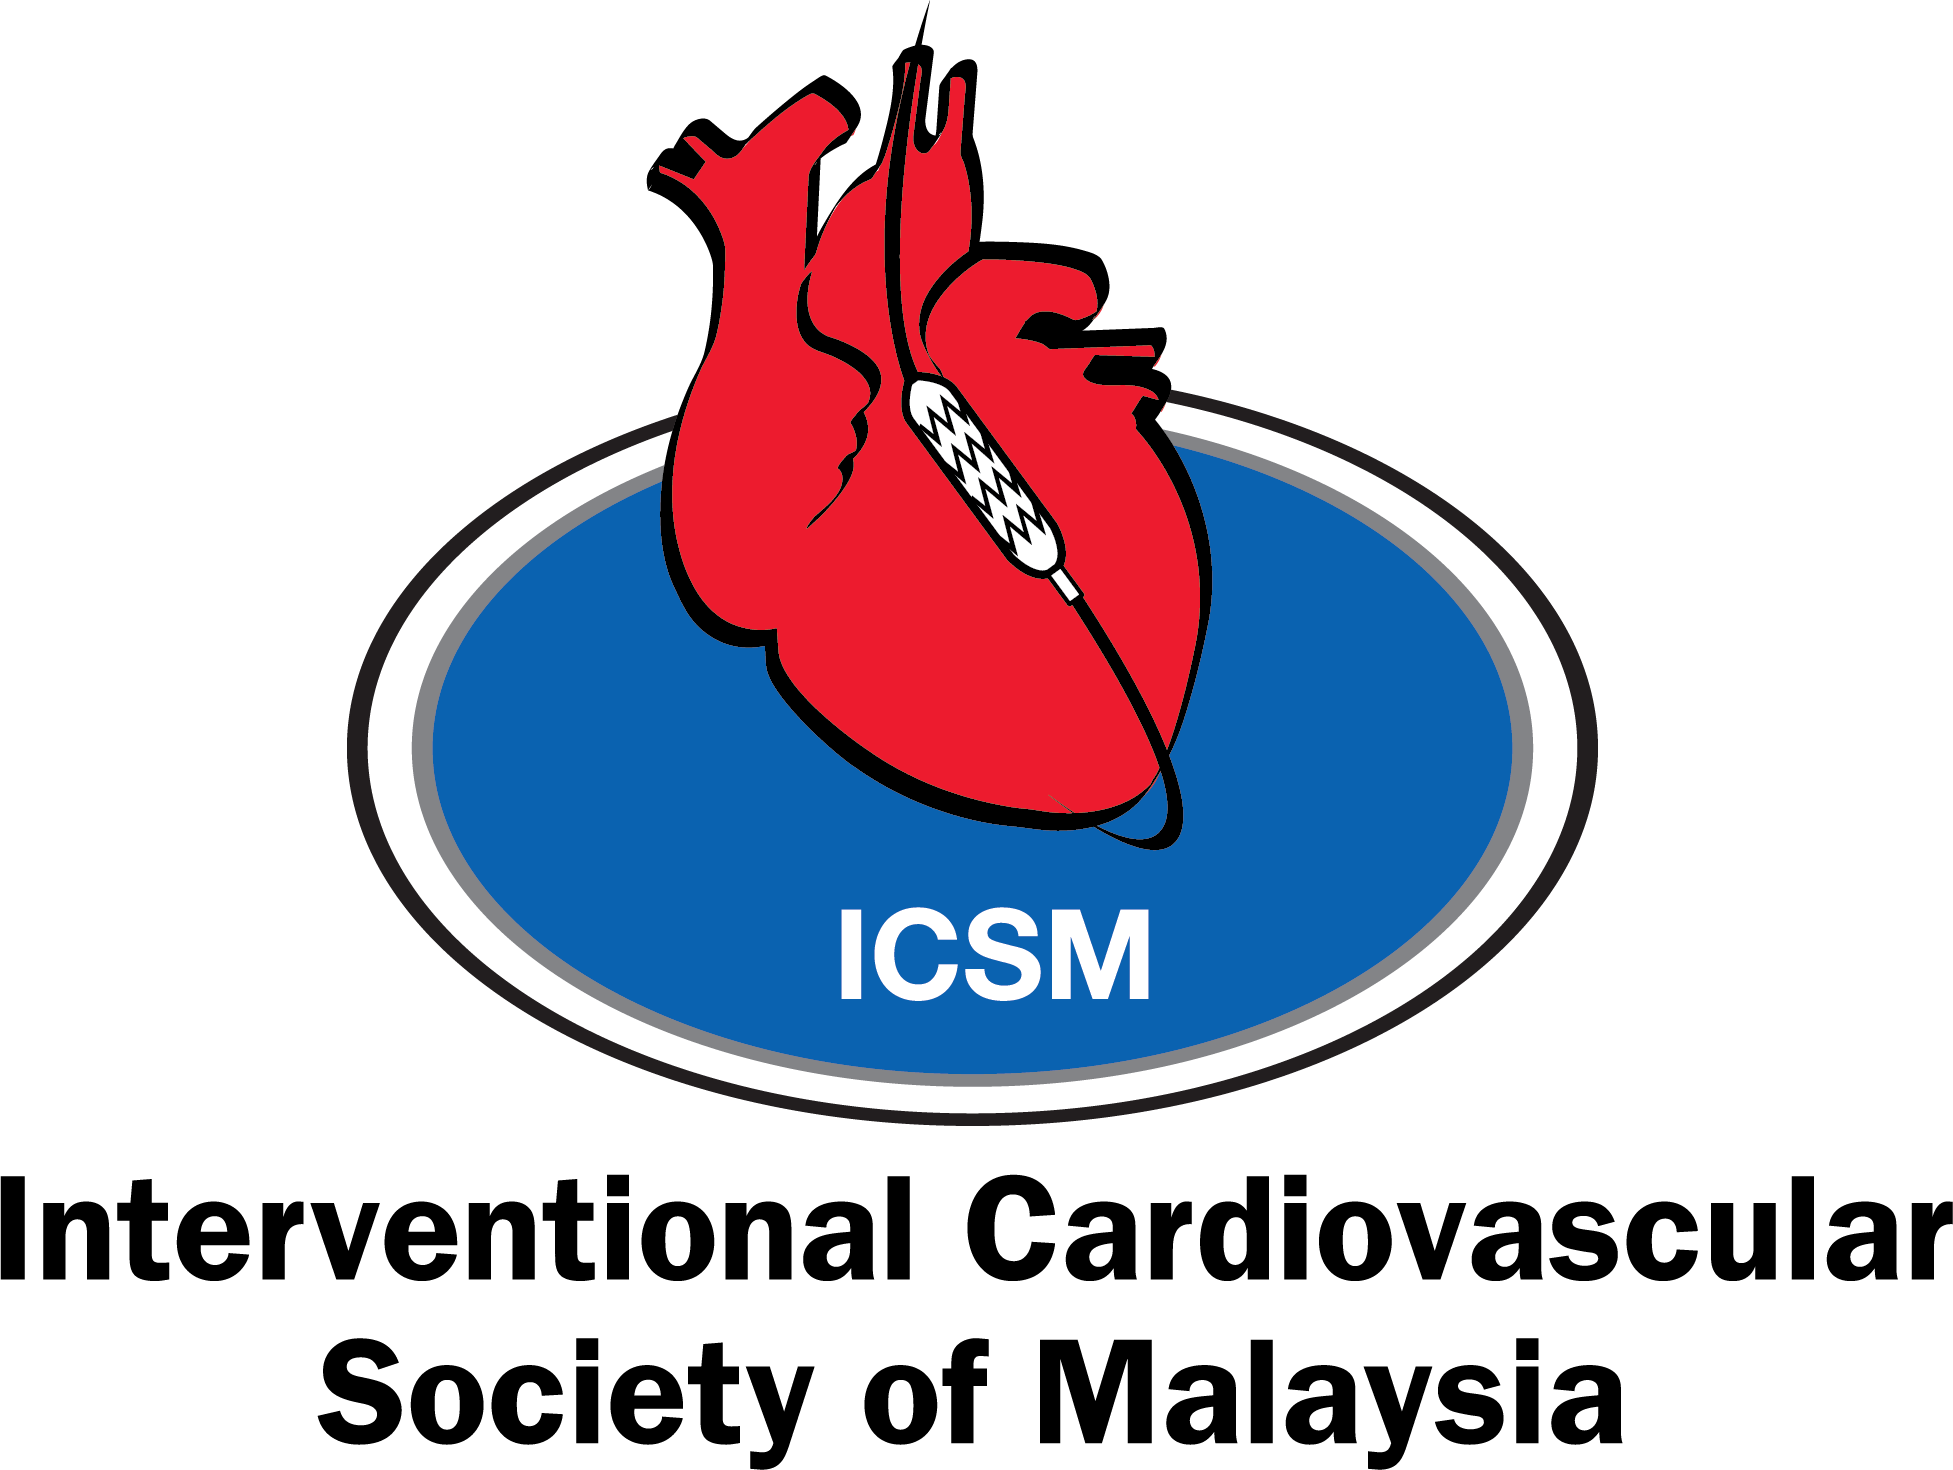 National Heart Association Malaysia (NHAM) Conferences